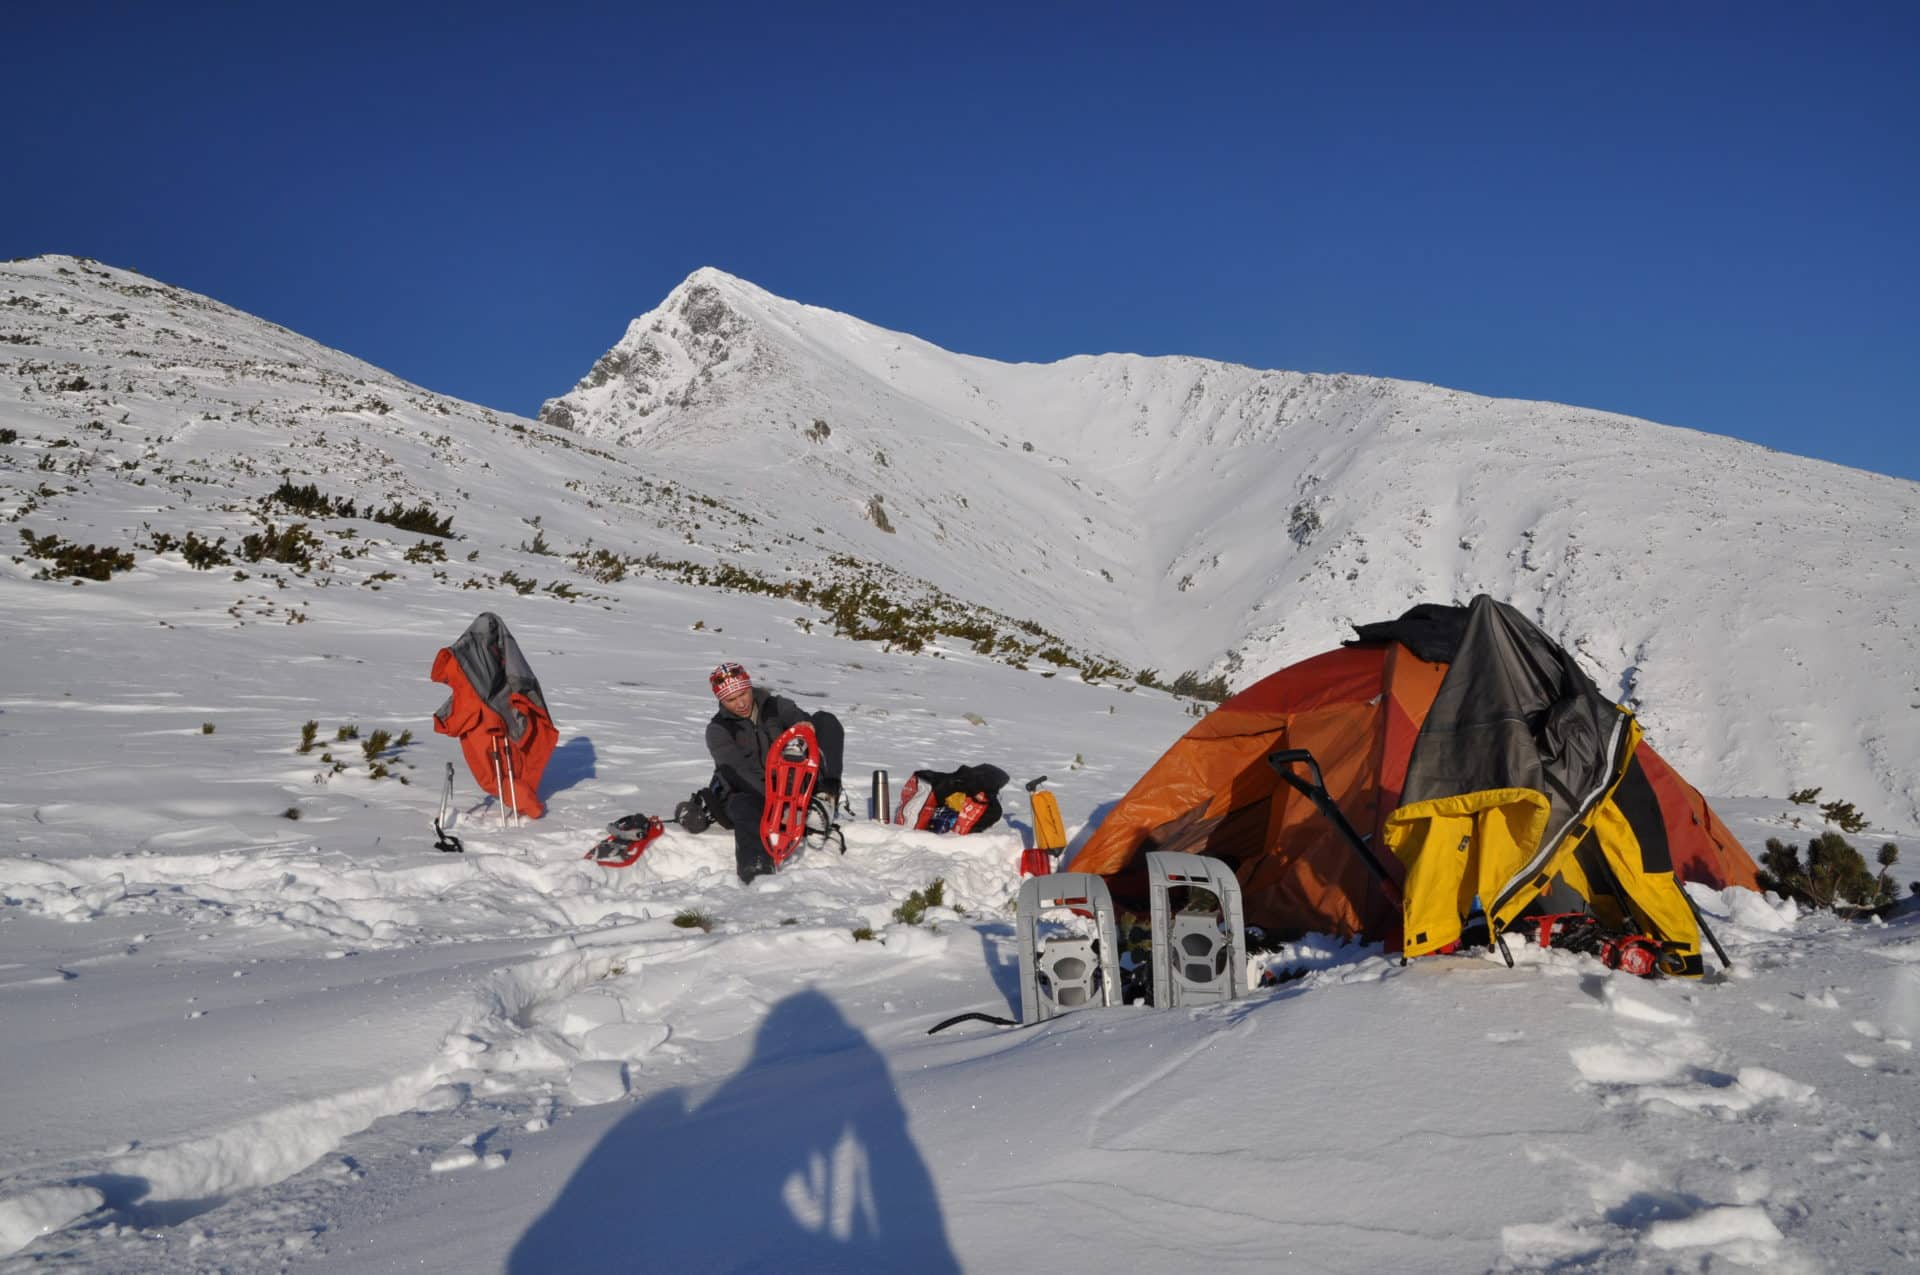 High Tatras guided winter mountaineering